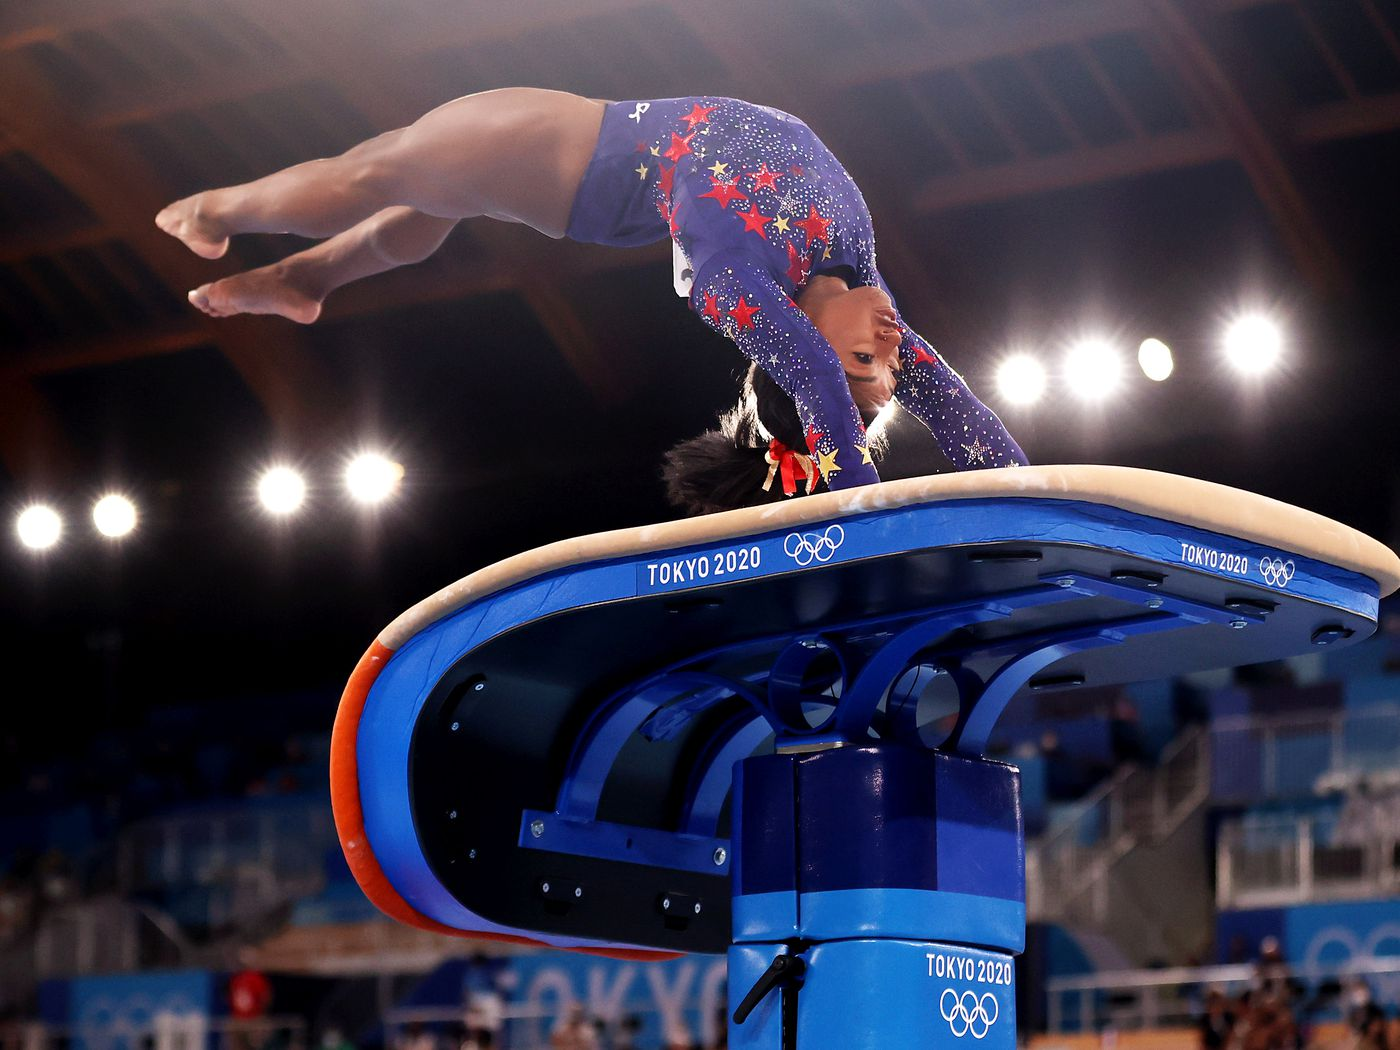 Tokyo Olympics: USA Gymnastics Finishes Second in Qualifying Round